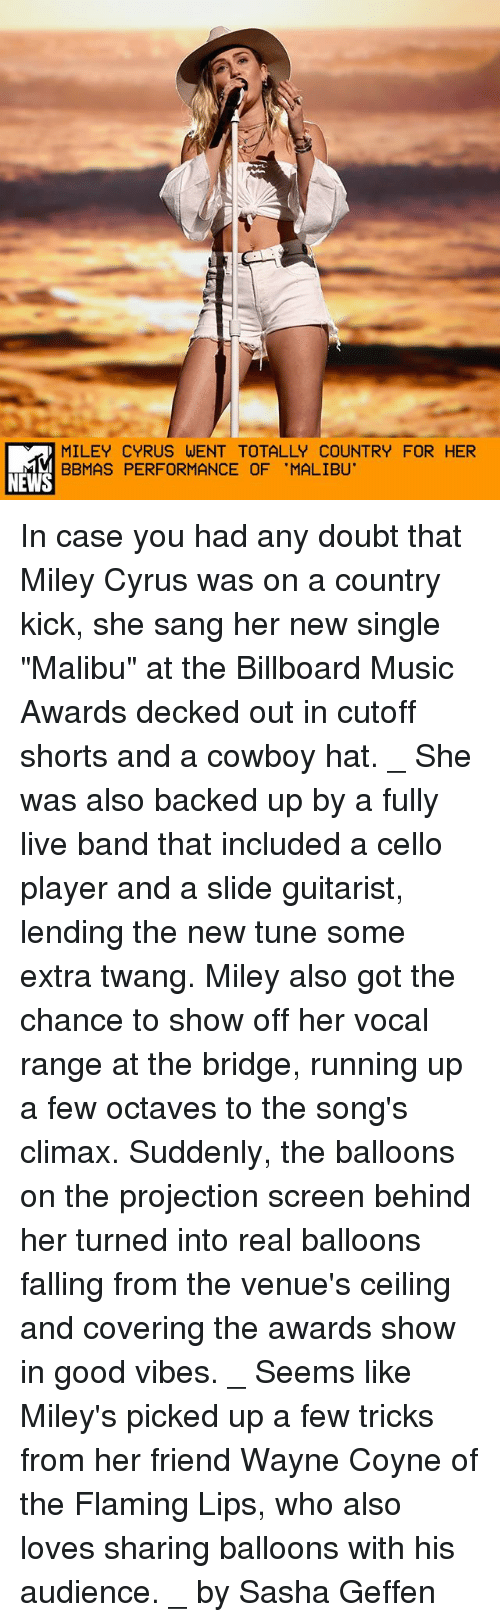 """malibu: MILEY CYRUS WENT TOTALLY COUNTRY FOR HER  BBMAS PERFORMANCE OF 'MALIBU'  NEWS In case you had any doubt that Miley Cyrus was on a country kick, she sang her new single """"Malibu"""" at the Billboard Music Awards decked out in cutoff shorts and a cowboy hat. _ She was also backed up by a fully live band that included a cello player and a slide guitarist, lending the new tune some extra twang. Miley also got the chance to show off her vocal range at the bridge, running up a few octaves to the song's climax. Suddenly, the balloons on the projection screen behind her turned into real balloons falling from the venue's ceiling and covering the awards show in good vibes. _ Seems like Miley's picked up a few tricks from her friend Wayne Coyne of the Flaming Lips, who also loves sharing balloons with his audience. _ by Sasha Geffen"""